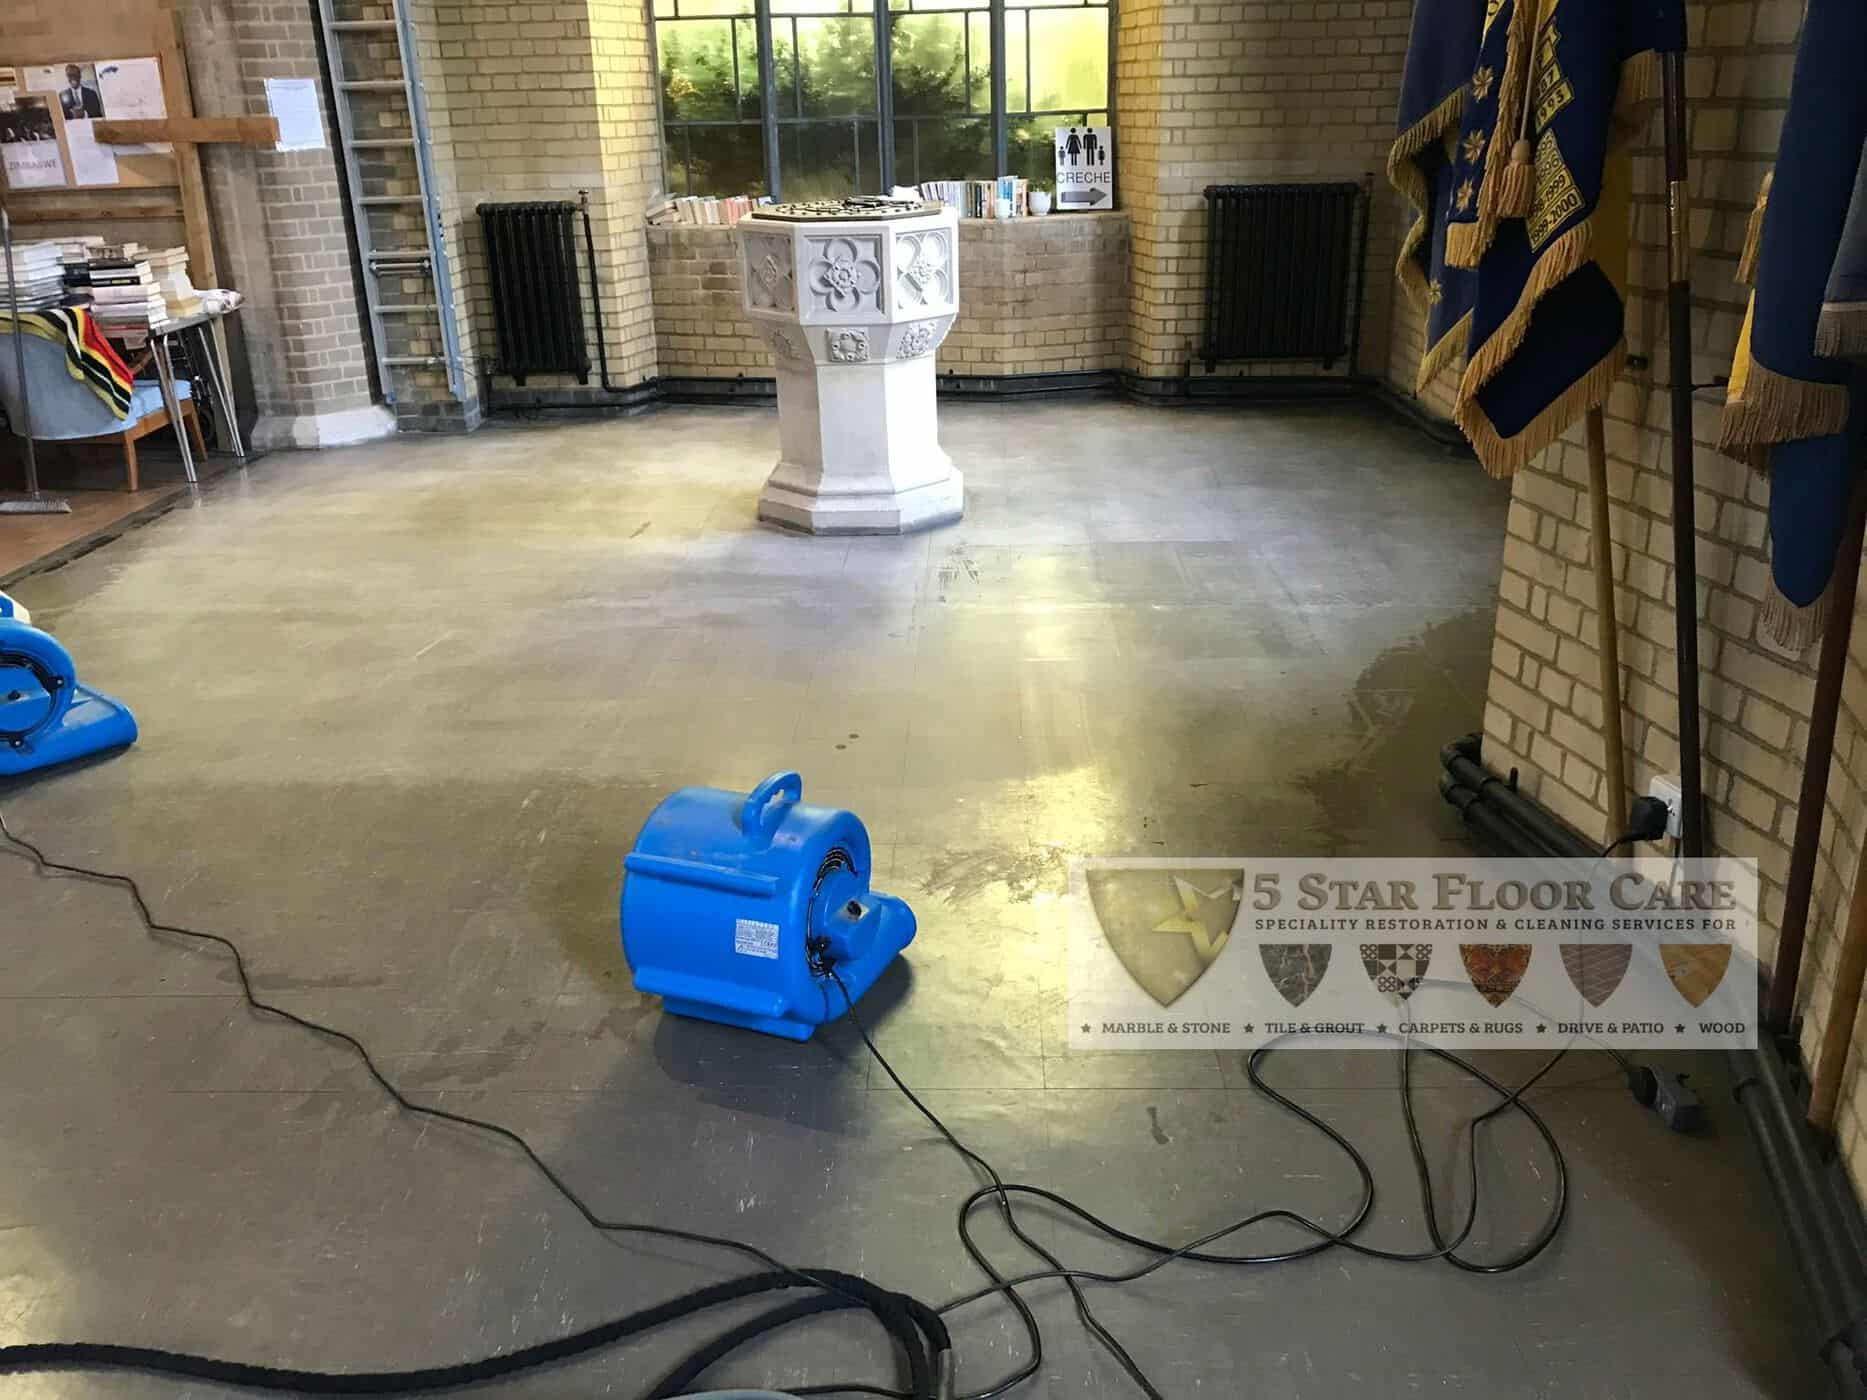 During church vinyl floor cleaning